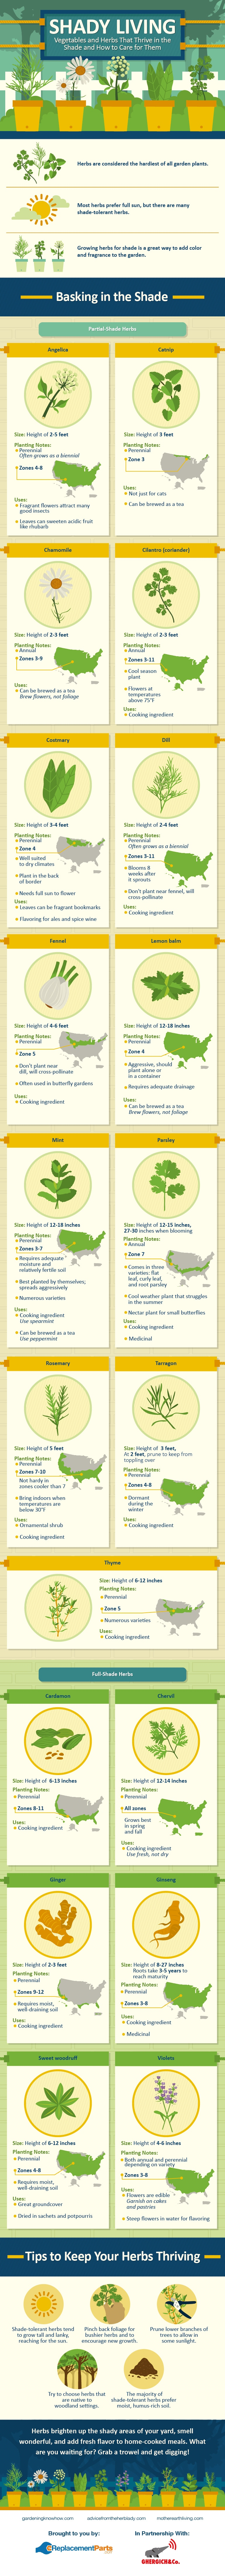 Different Kinds Of Herbs And Vegetables That Grow In The Shade - Infographic